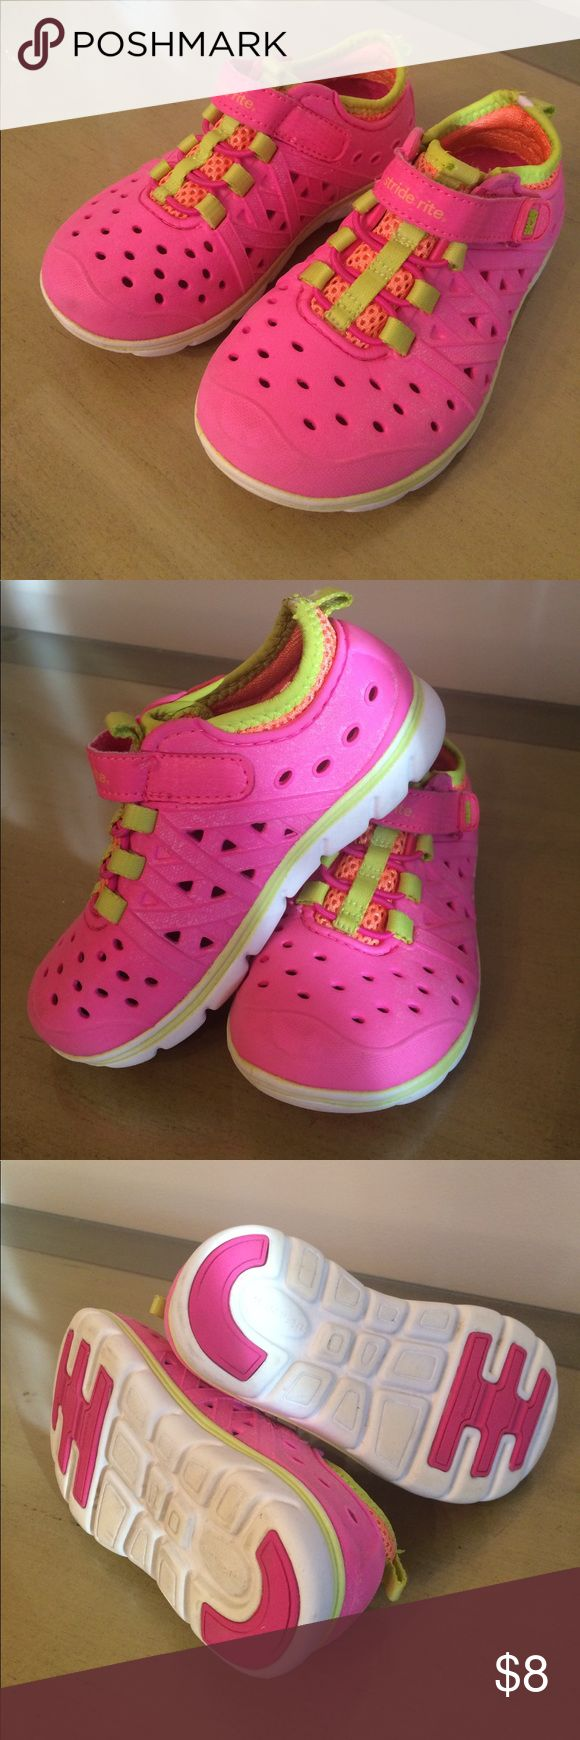 Kids Water Amphibian Shoes Stride Rite Kids Water Amphibian Shoes in pink and lime green . Gently used in good condition and have been washed Stride Rite Shoes Water Shoes